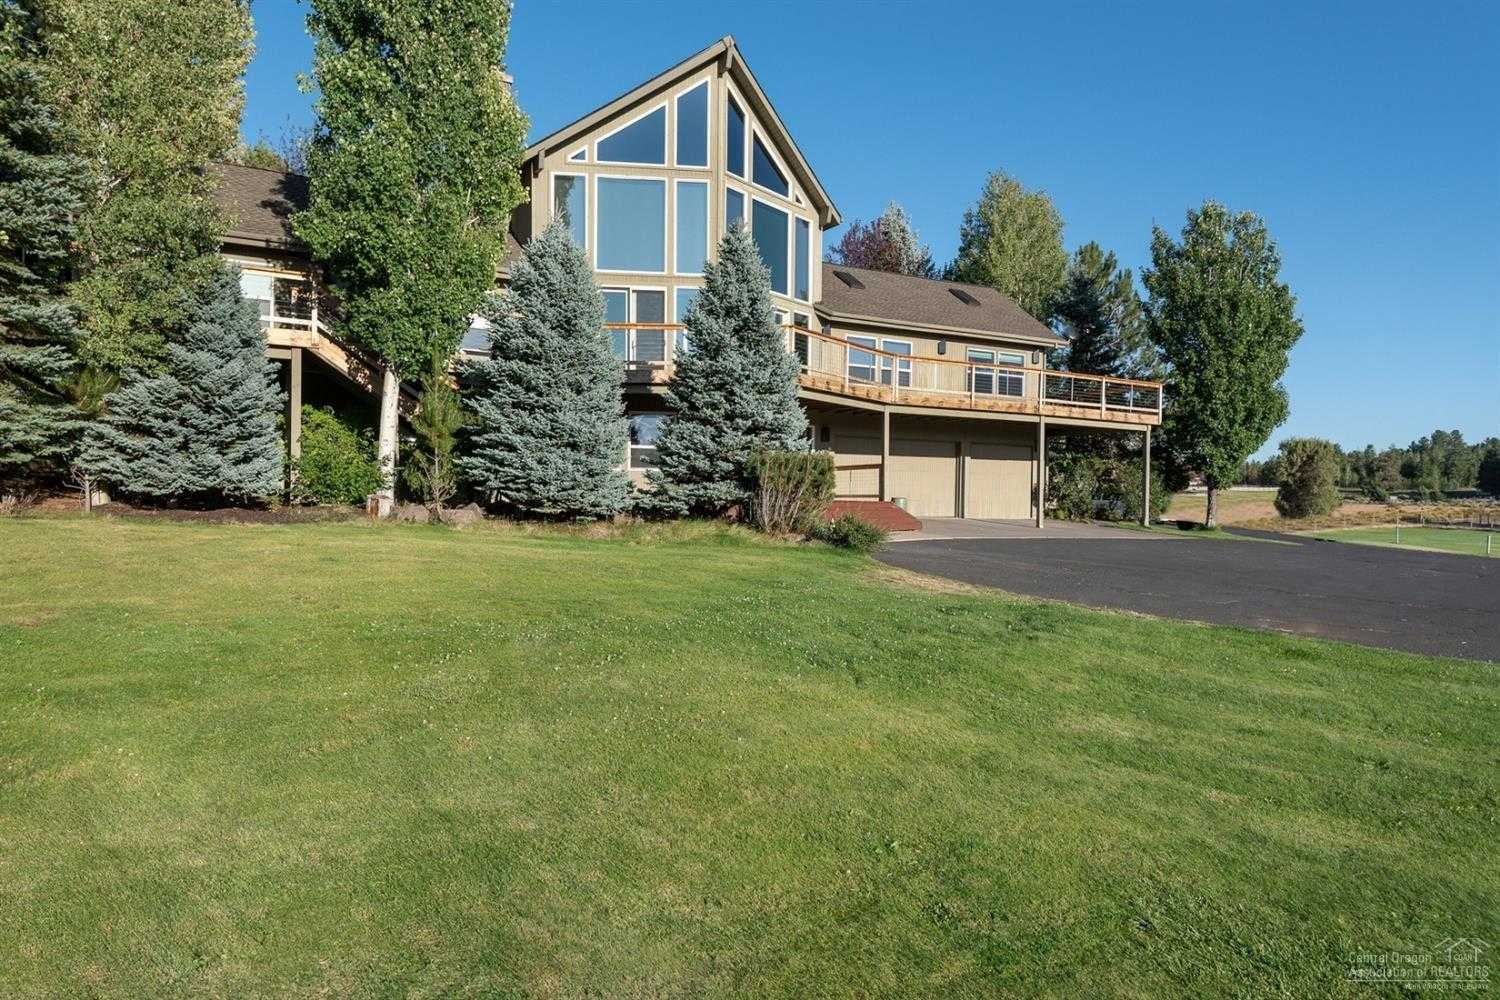 $1,700,000 - 4Br/4Ba -  for Sale in Bend